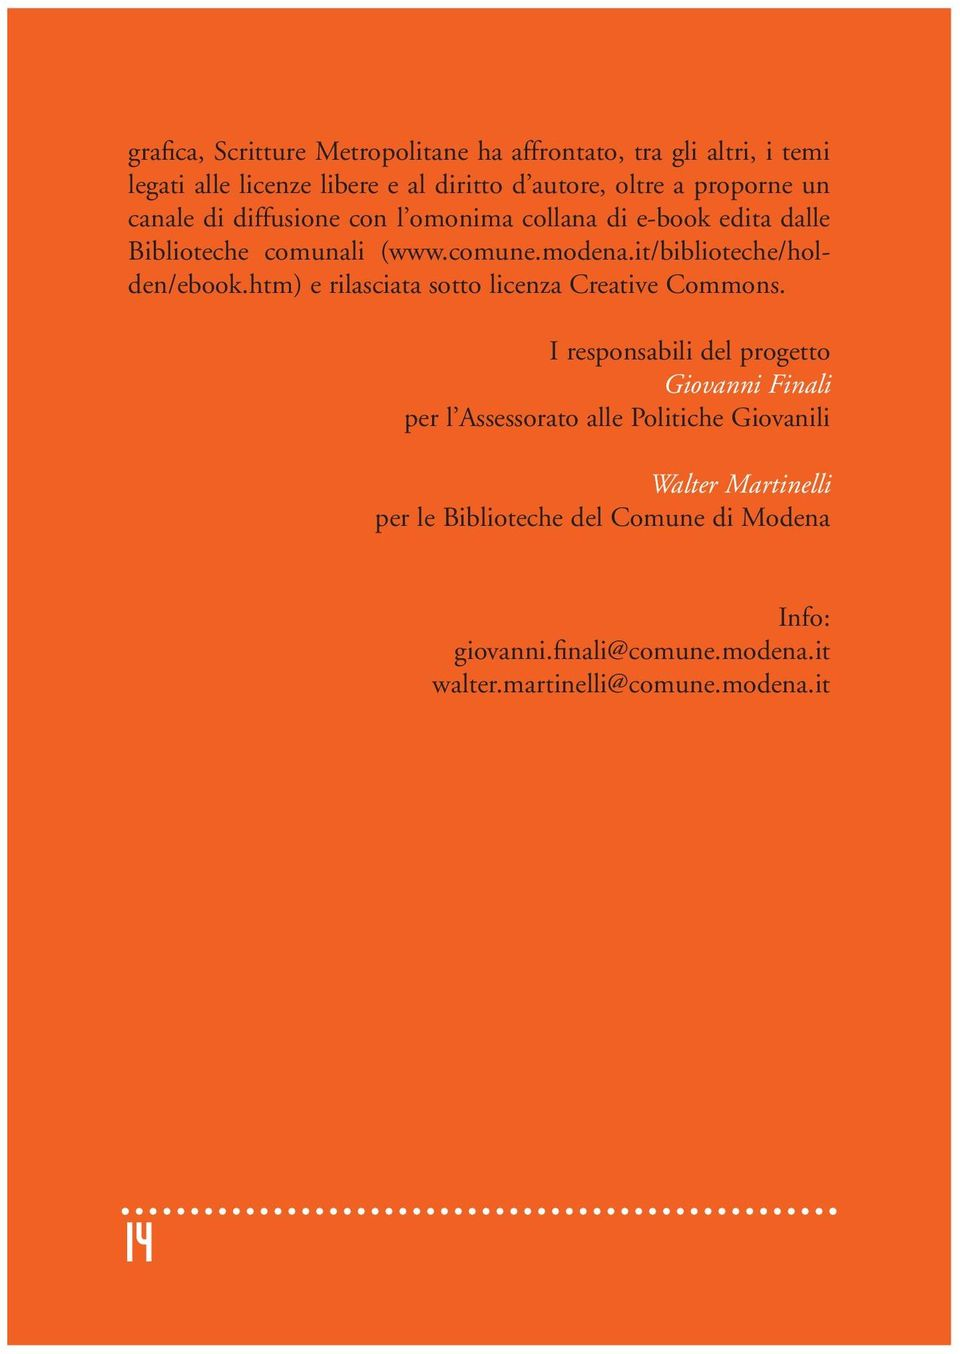 it/biblioteche/holden/ebook.htm) e rilasciata sotto licenza Creative Commons.